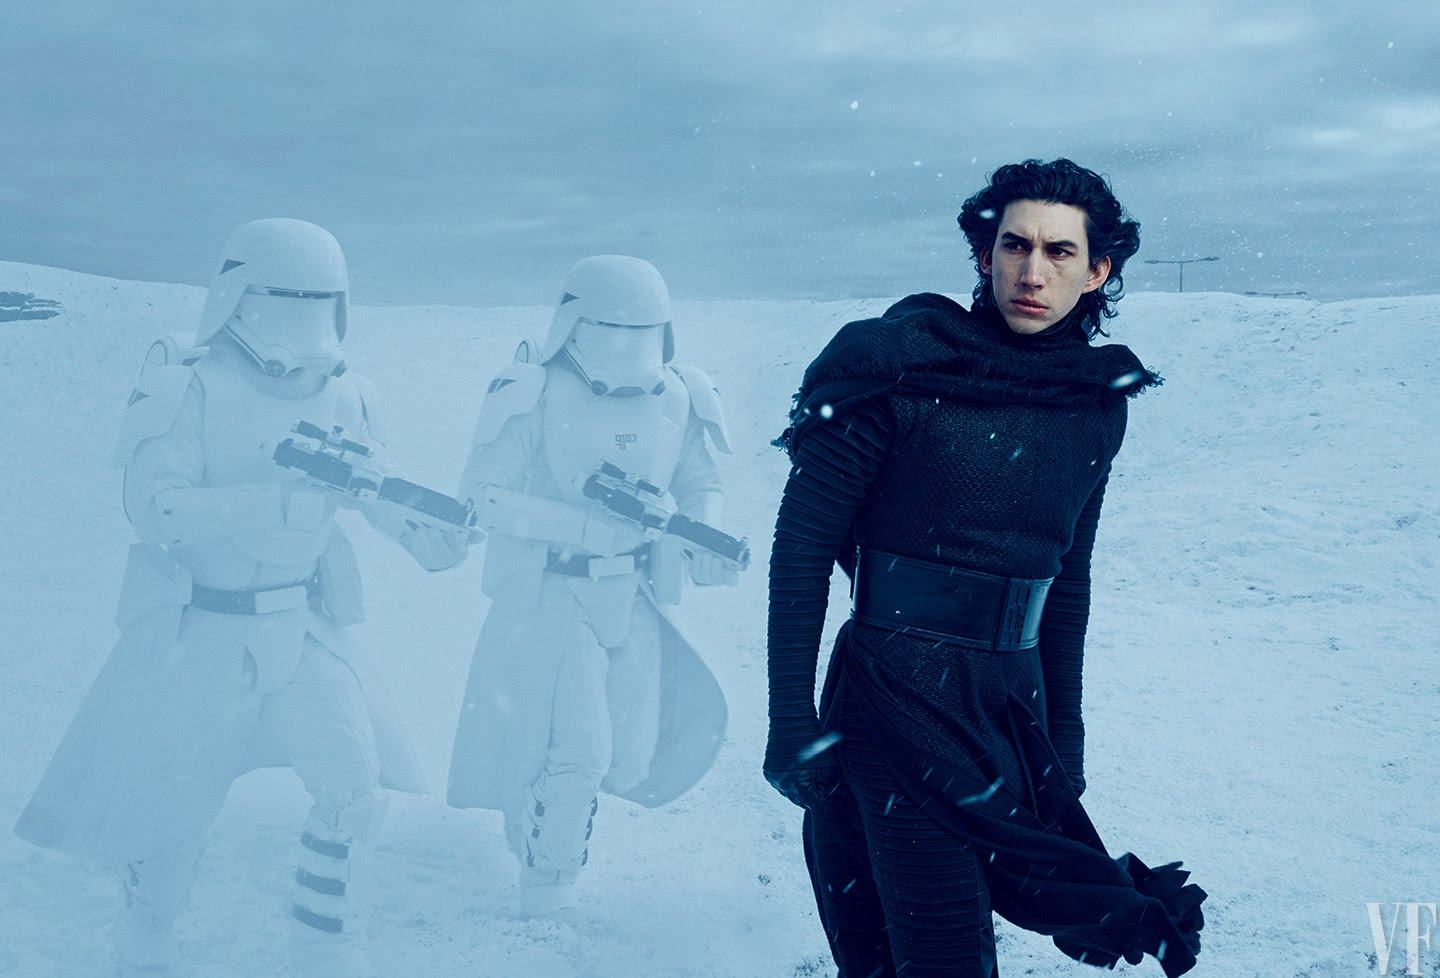 kylo ren and snow troopers